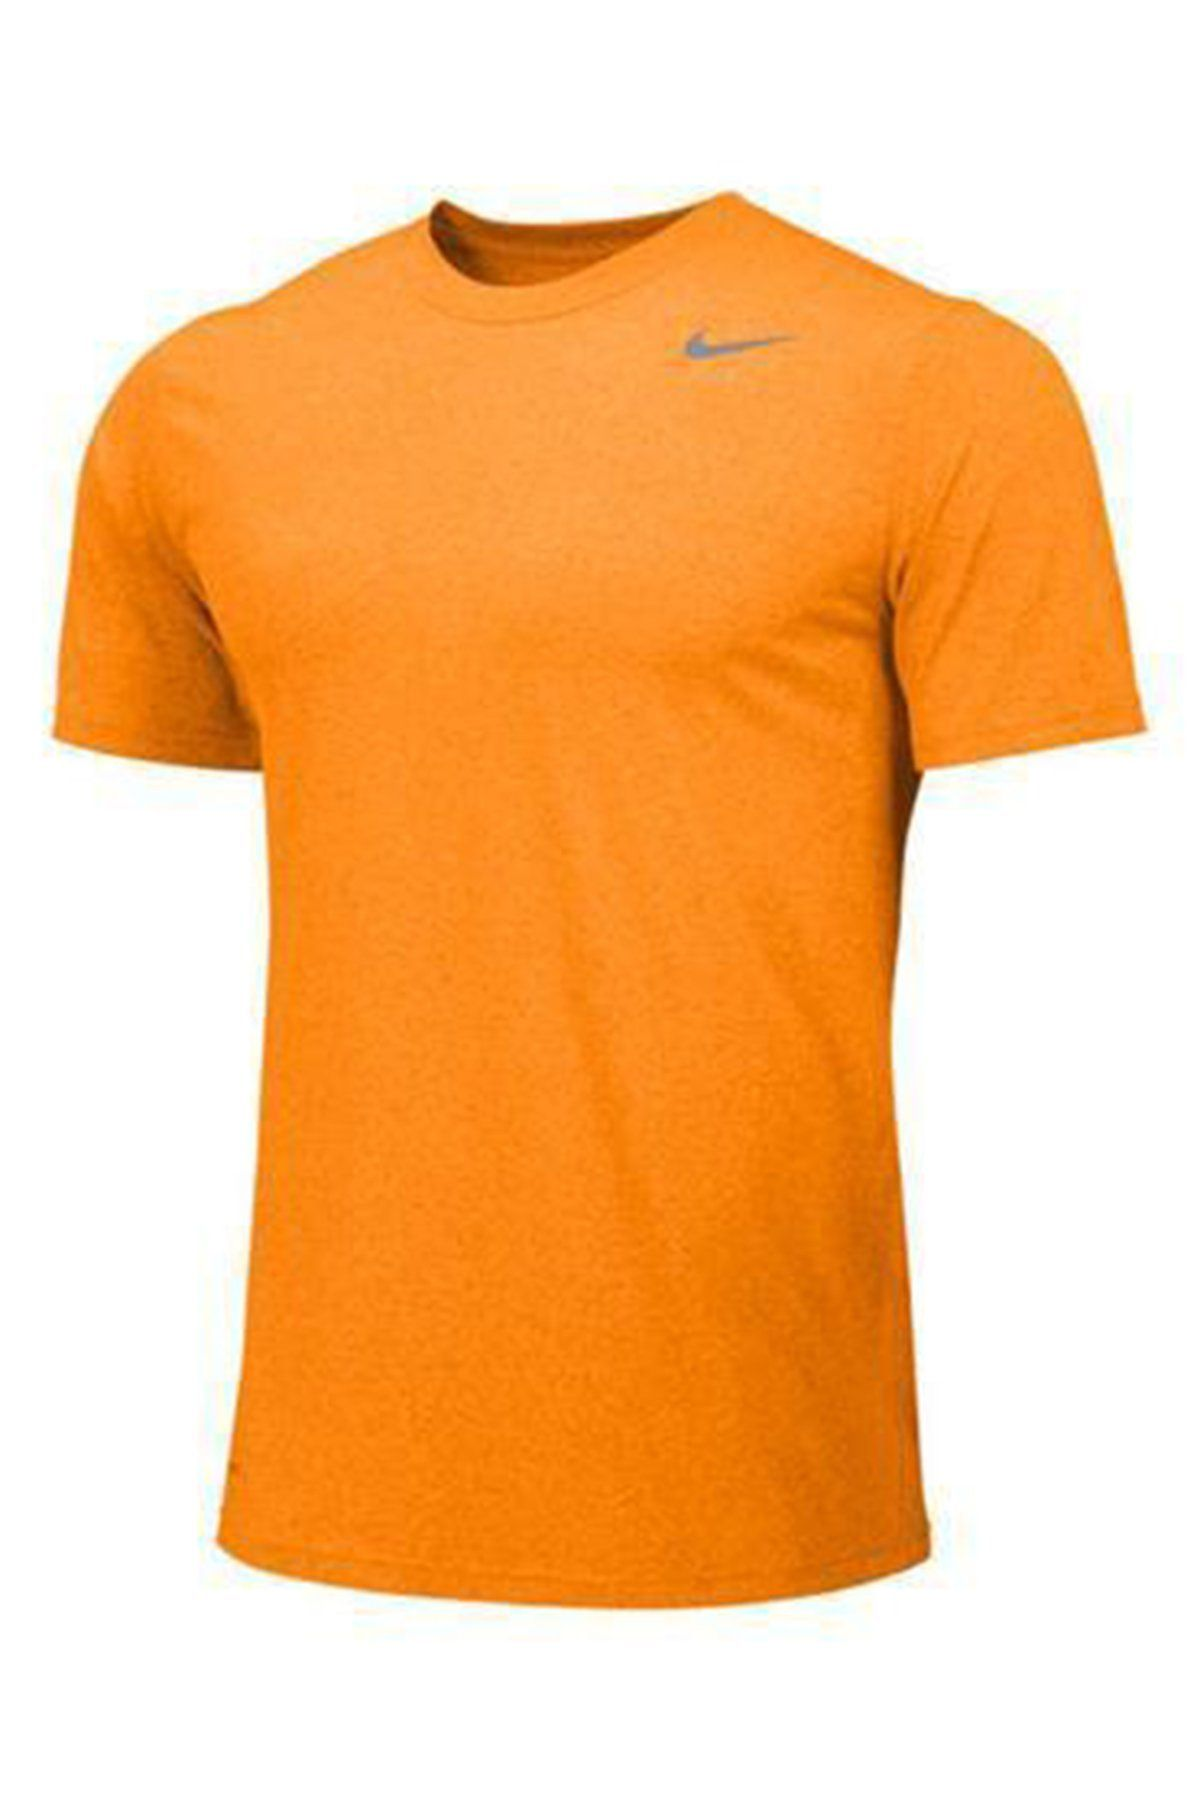 91b744b2 Nike Men's Team Legend Short Sleeve Crew 727982 Bright Ceramic/Cool Grey